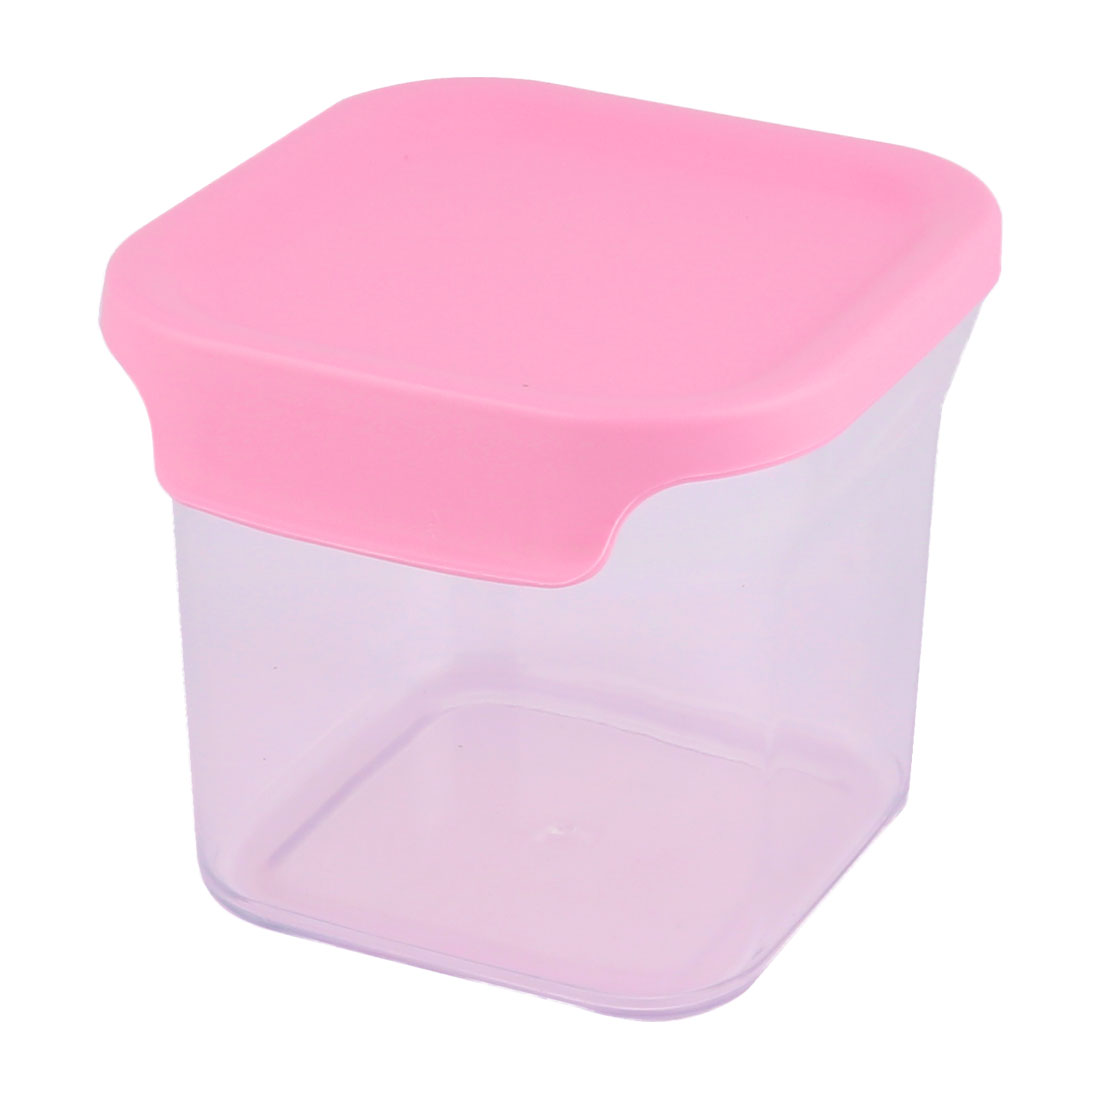 Picnic Hiking Plastic Airtight Cheese Food Storage Box Container Organizer Pink 650ML